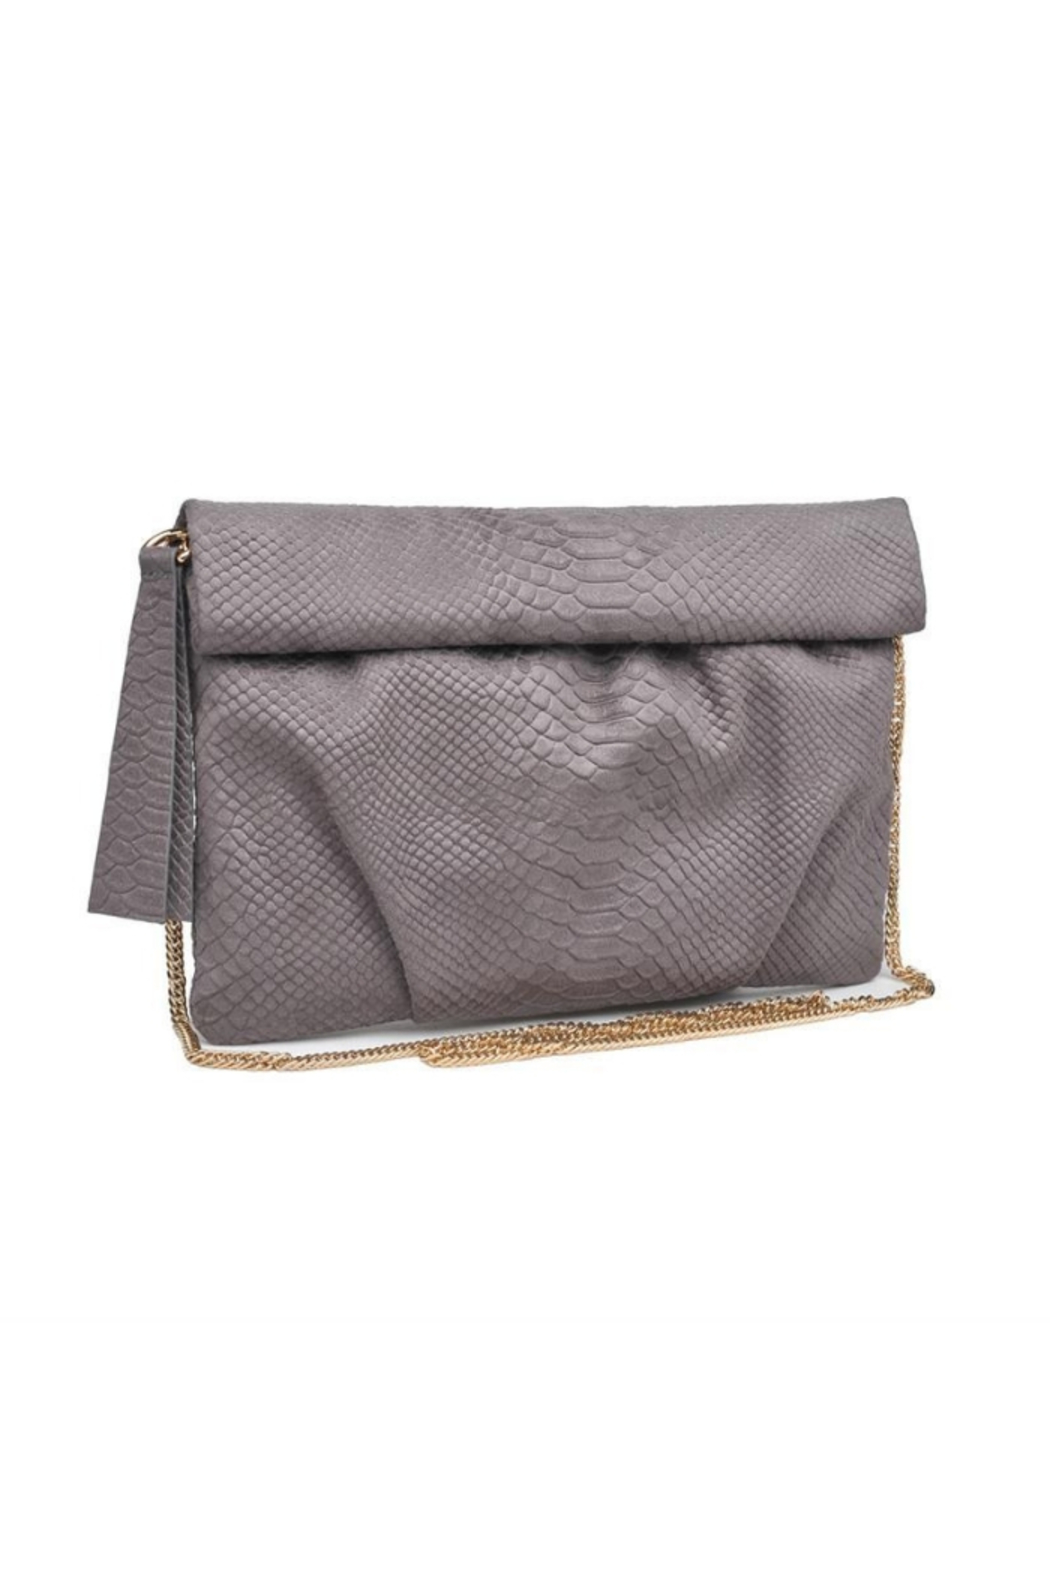 7b4ced5432b Urban Expressions Natalia Snake Crossbody from New York by Let s Bag ...